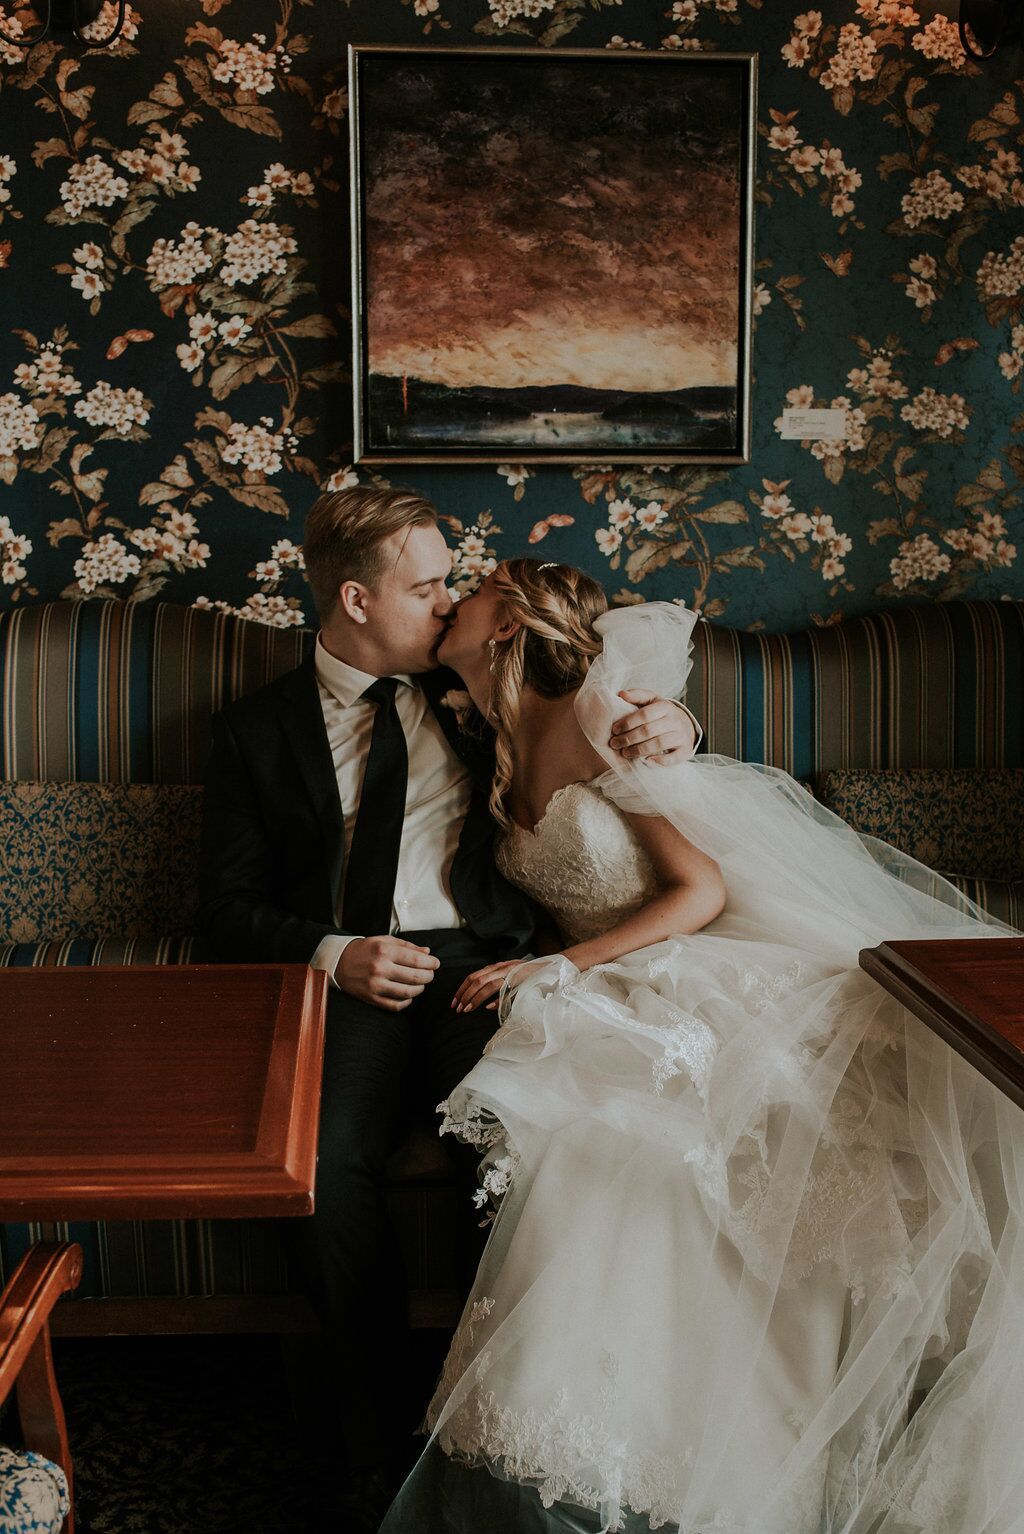 Romantic Wedding Couple kiss at The Snug with bride in Sposa Gown made of lace